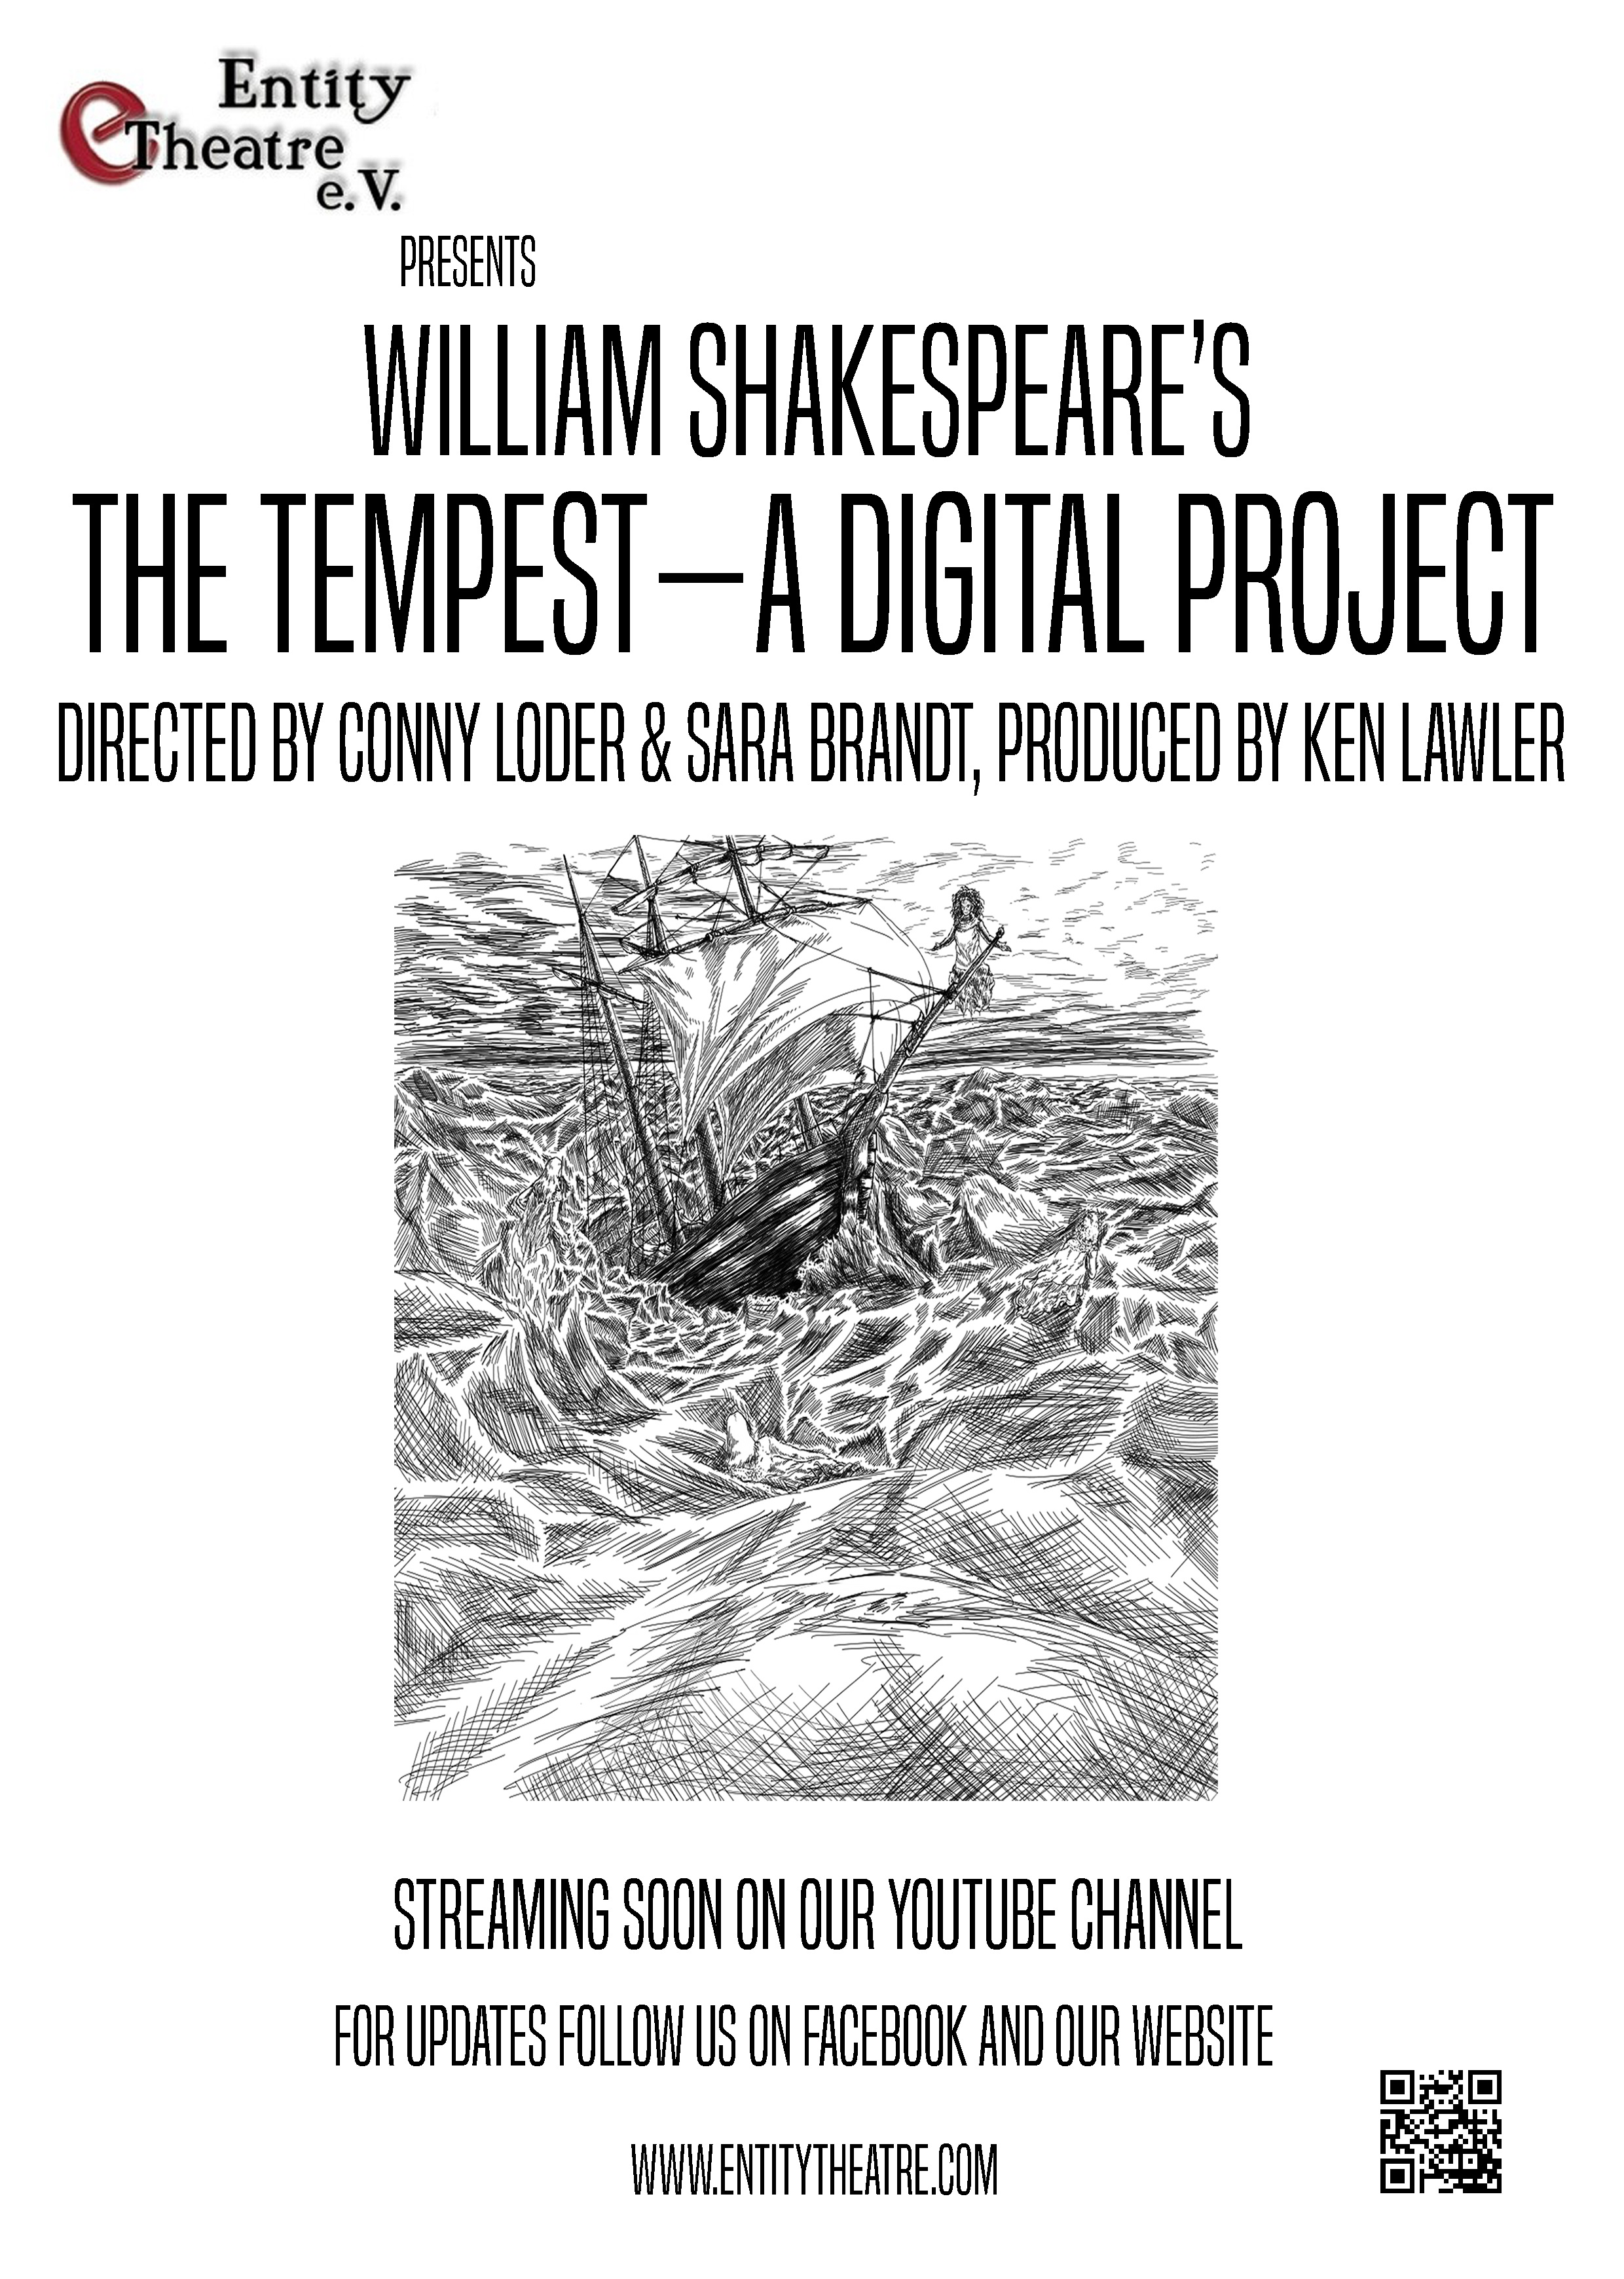 The Tempest: a digital project